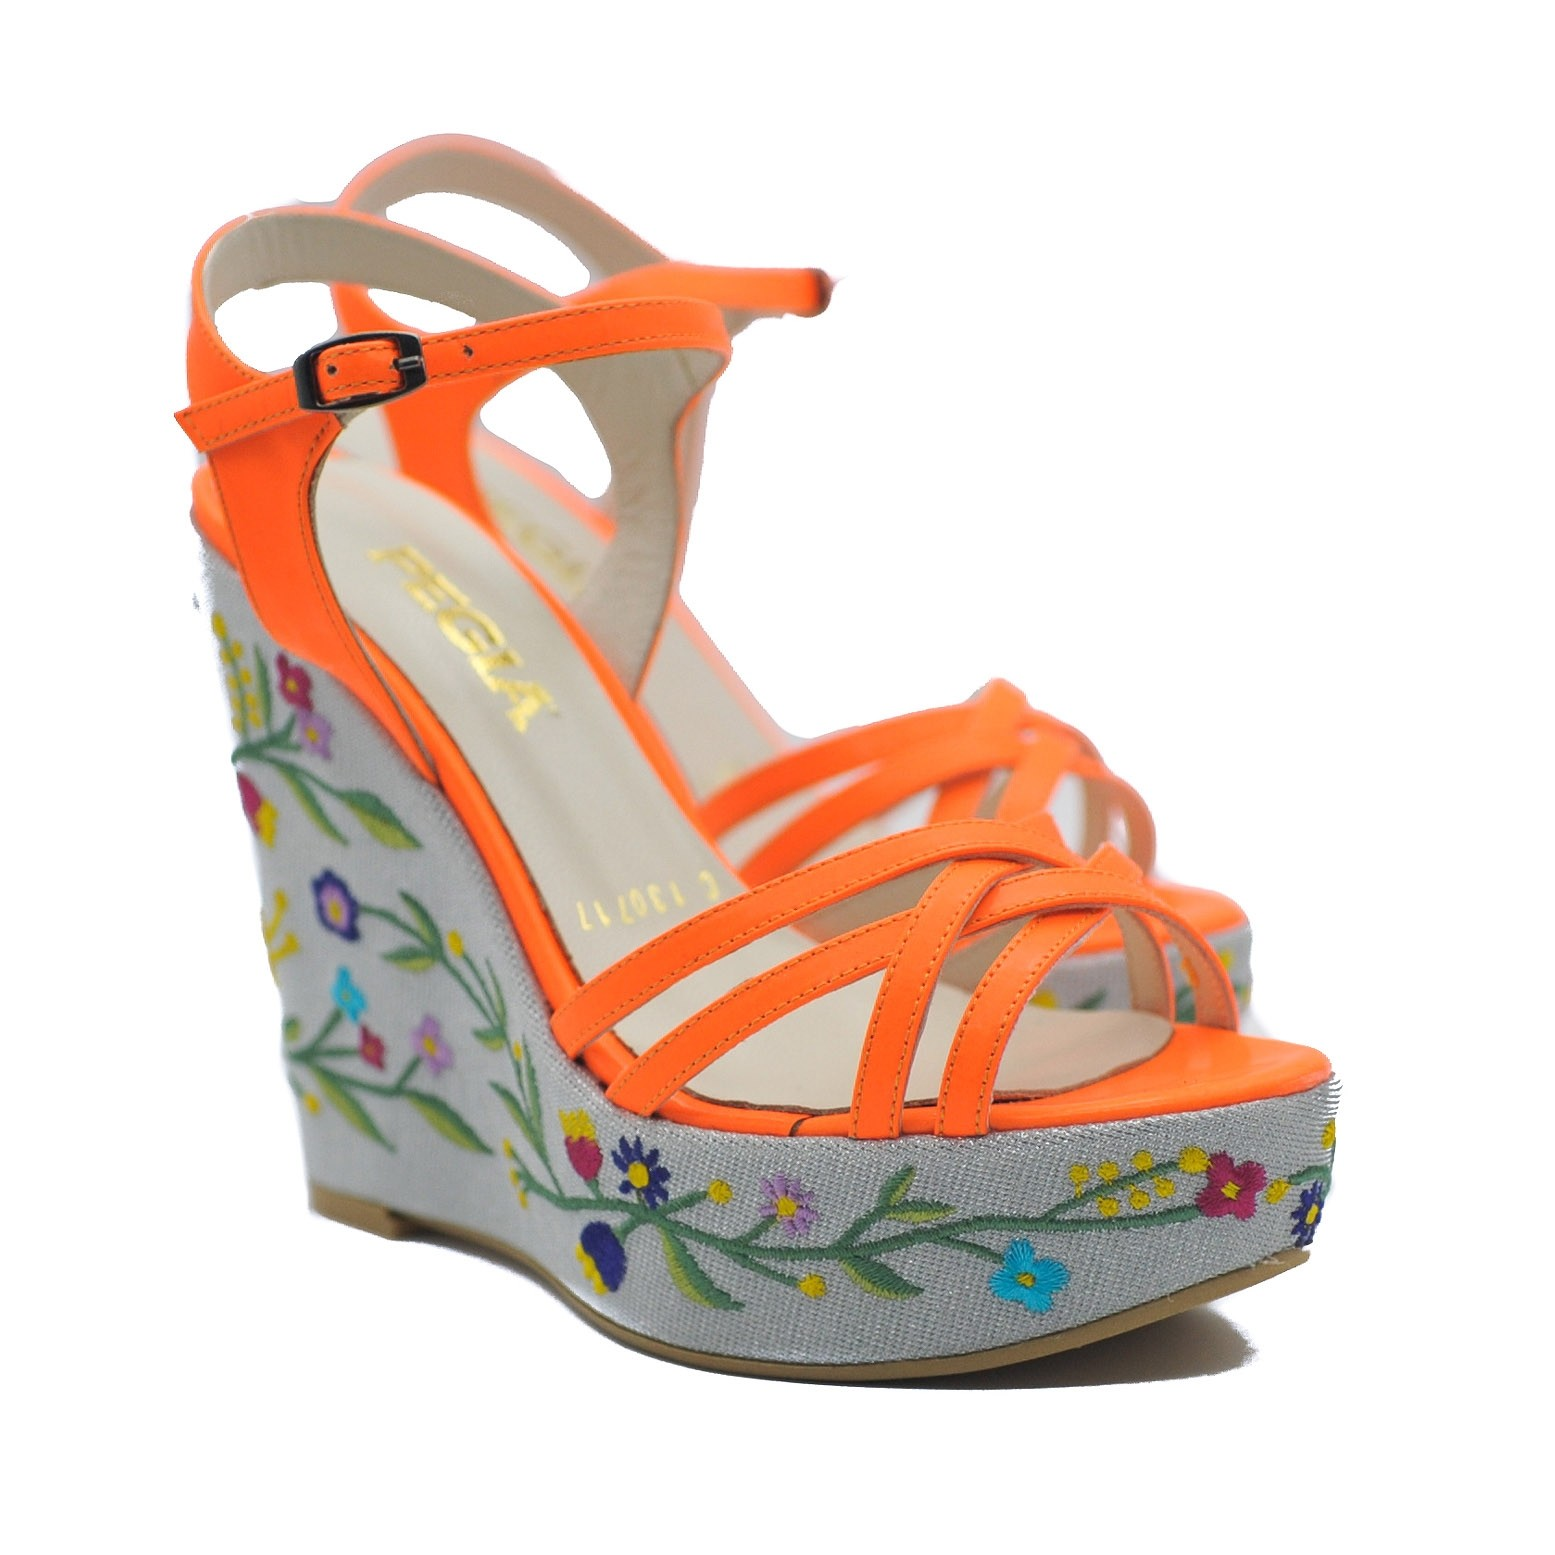 Pegia Ladies' Floral Embroidered Platform Wedge Heels with Patent Orange Straps